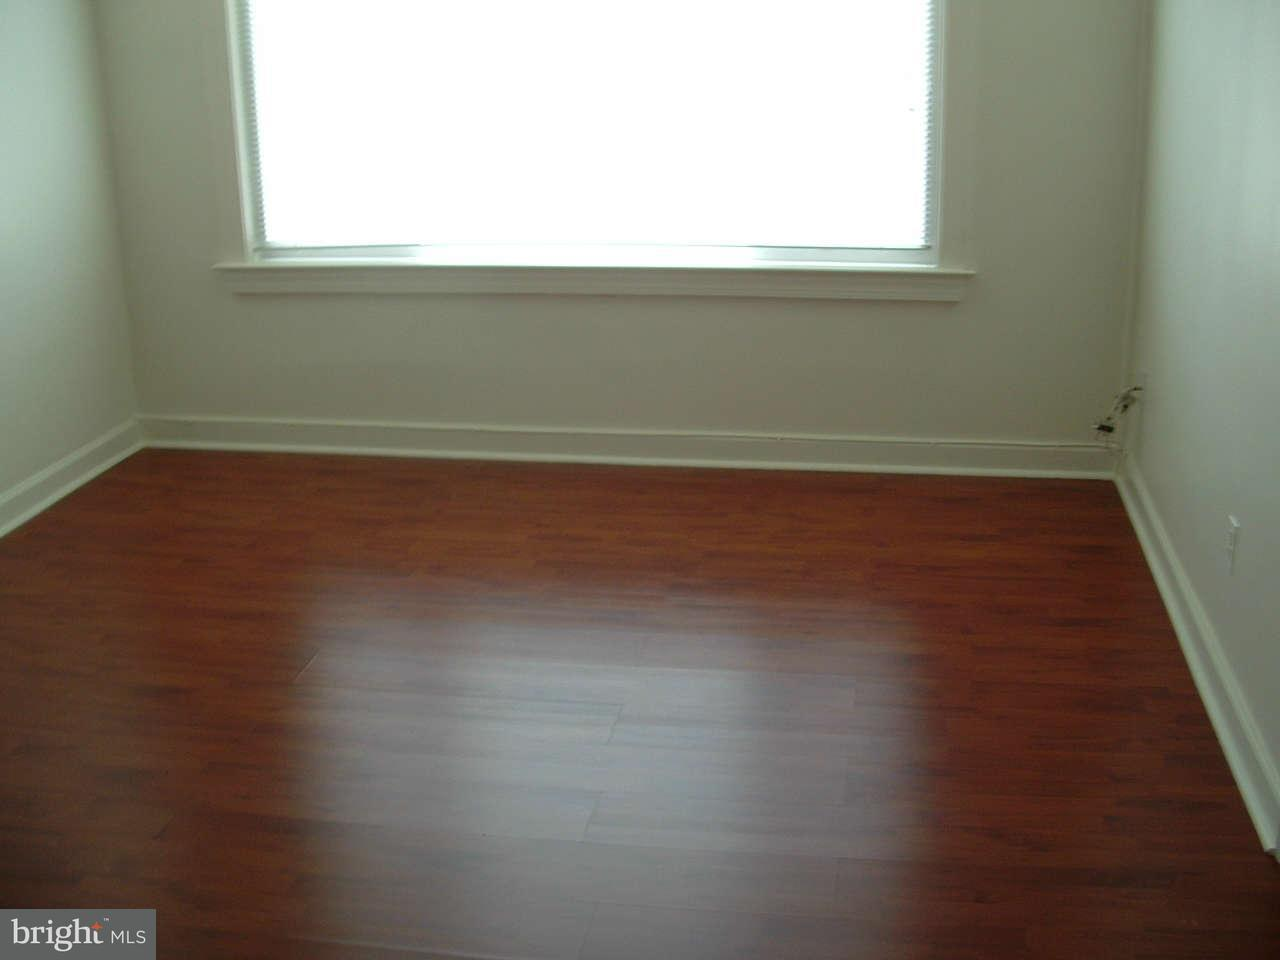 Other Residential for Rent at 725 Brandywine St SE #103 Washington, District Of Columbia 20032 United States